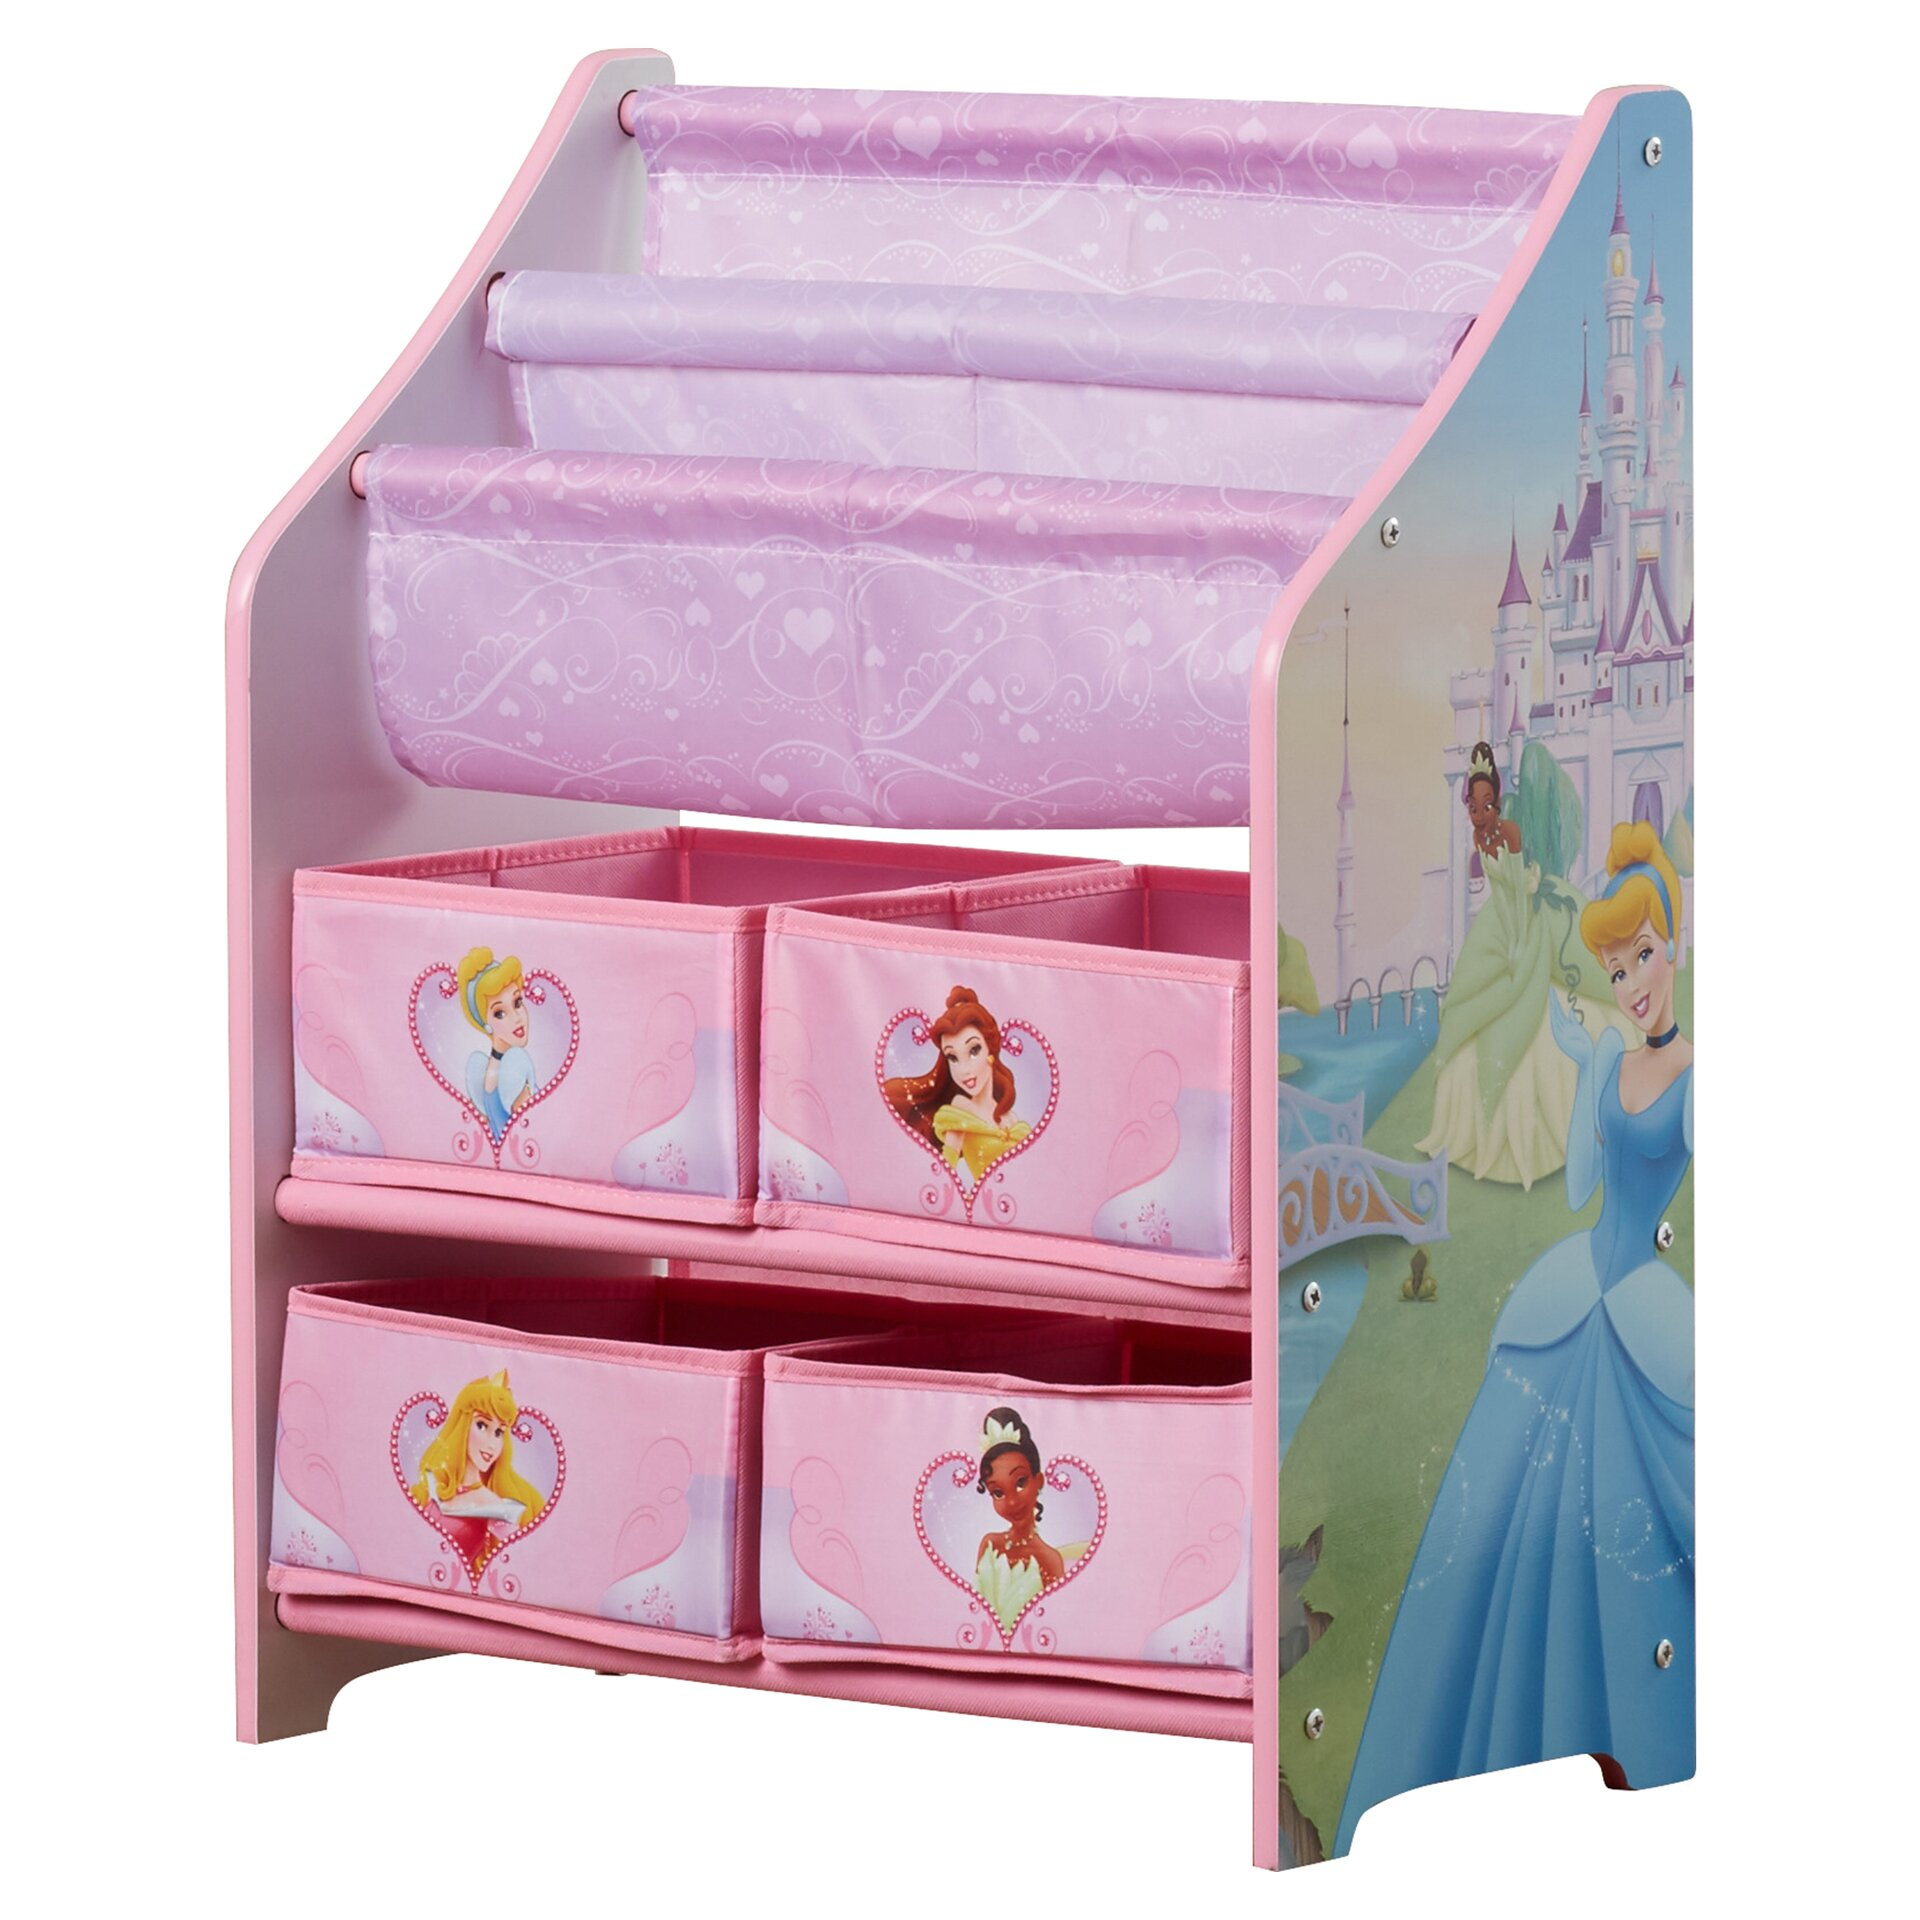 Delta Children Disney Princess Book amp Toy Organizer  : Delta Children Disney Princess Book and Toy Organizer TB84655PS999 from www.wayfair.com size 1920 x 1920 jpeg 483kB